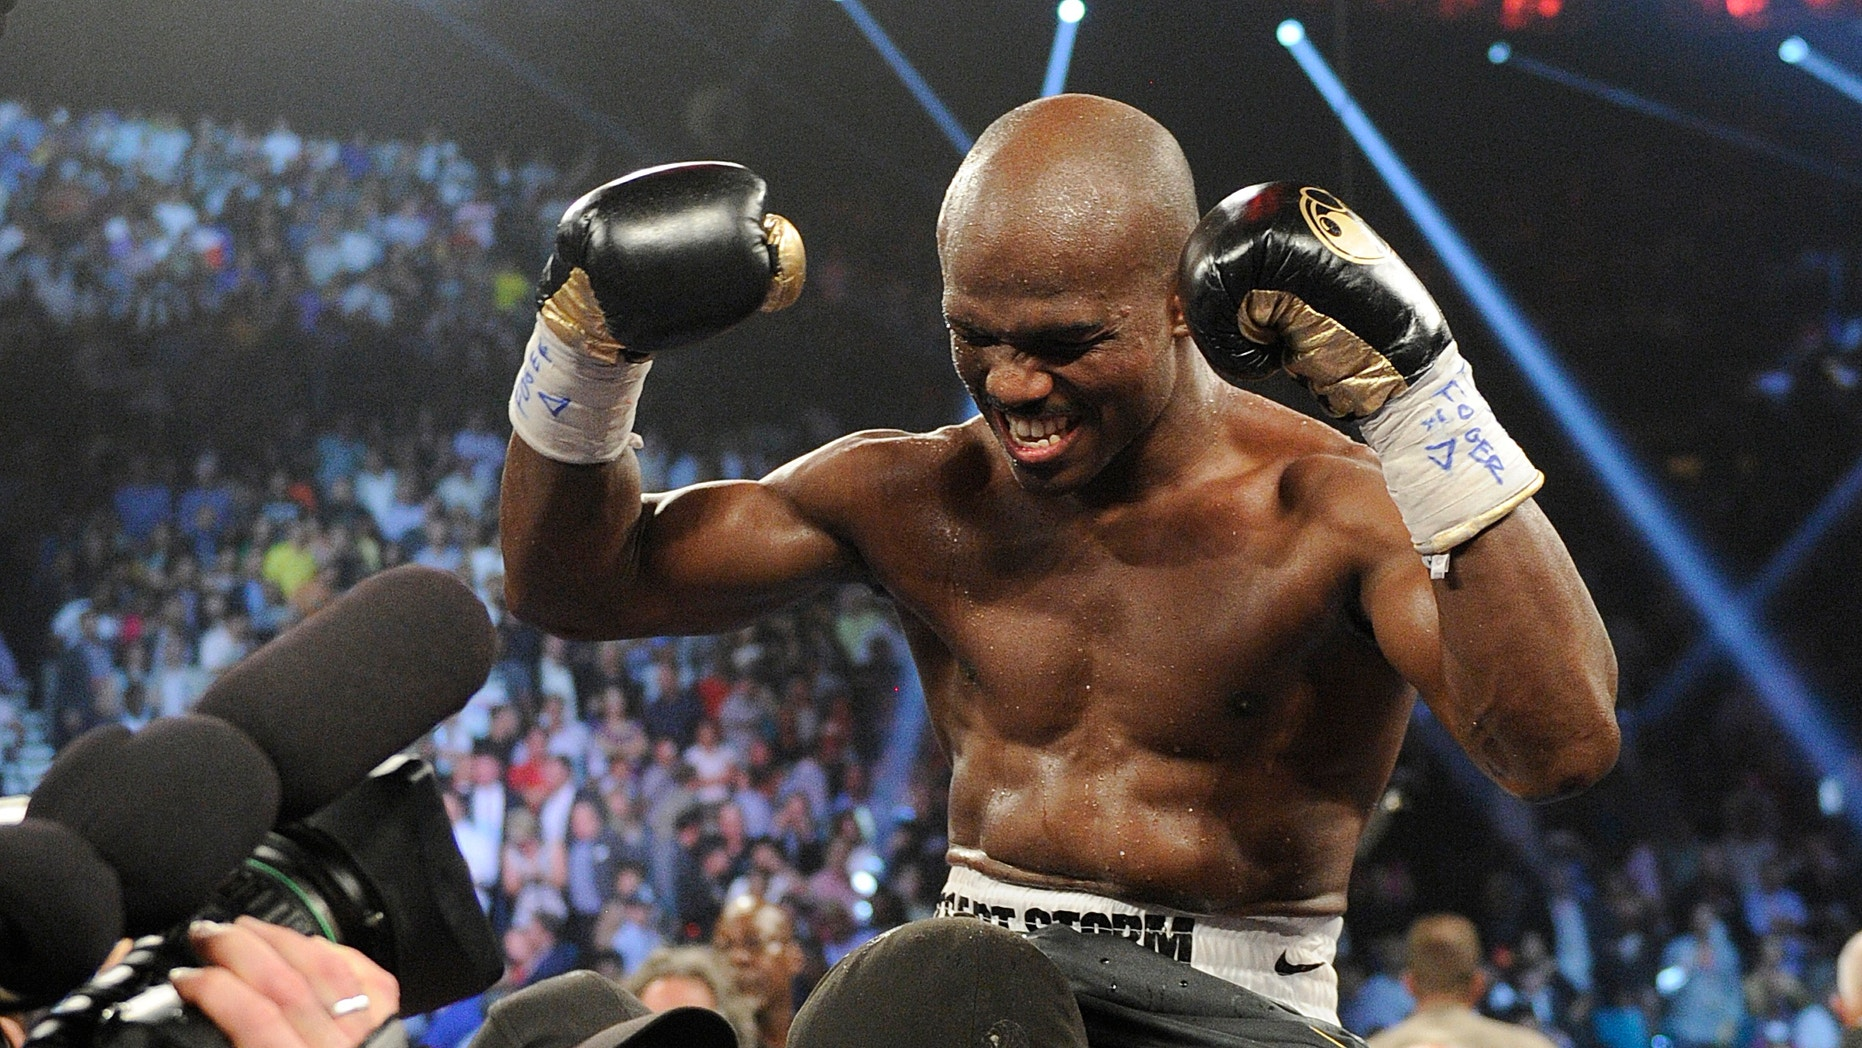 June 9, 2012: Timothy Bradley, from Palm Springs, Calif., reacts to his split decision victory over Manny Pacquiao, from the Philippines, in their WBO welterweight title fight.